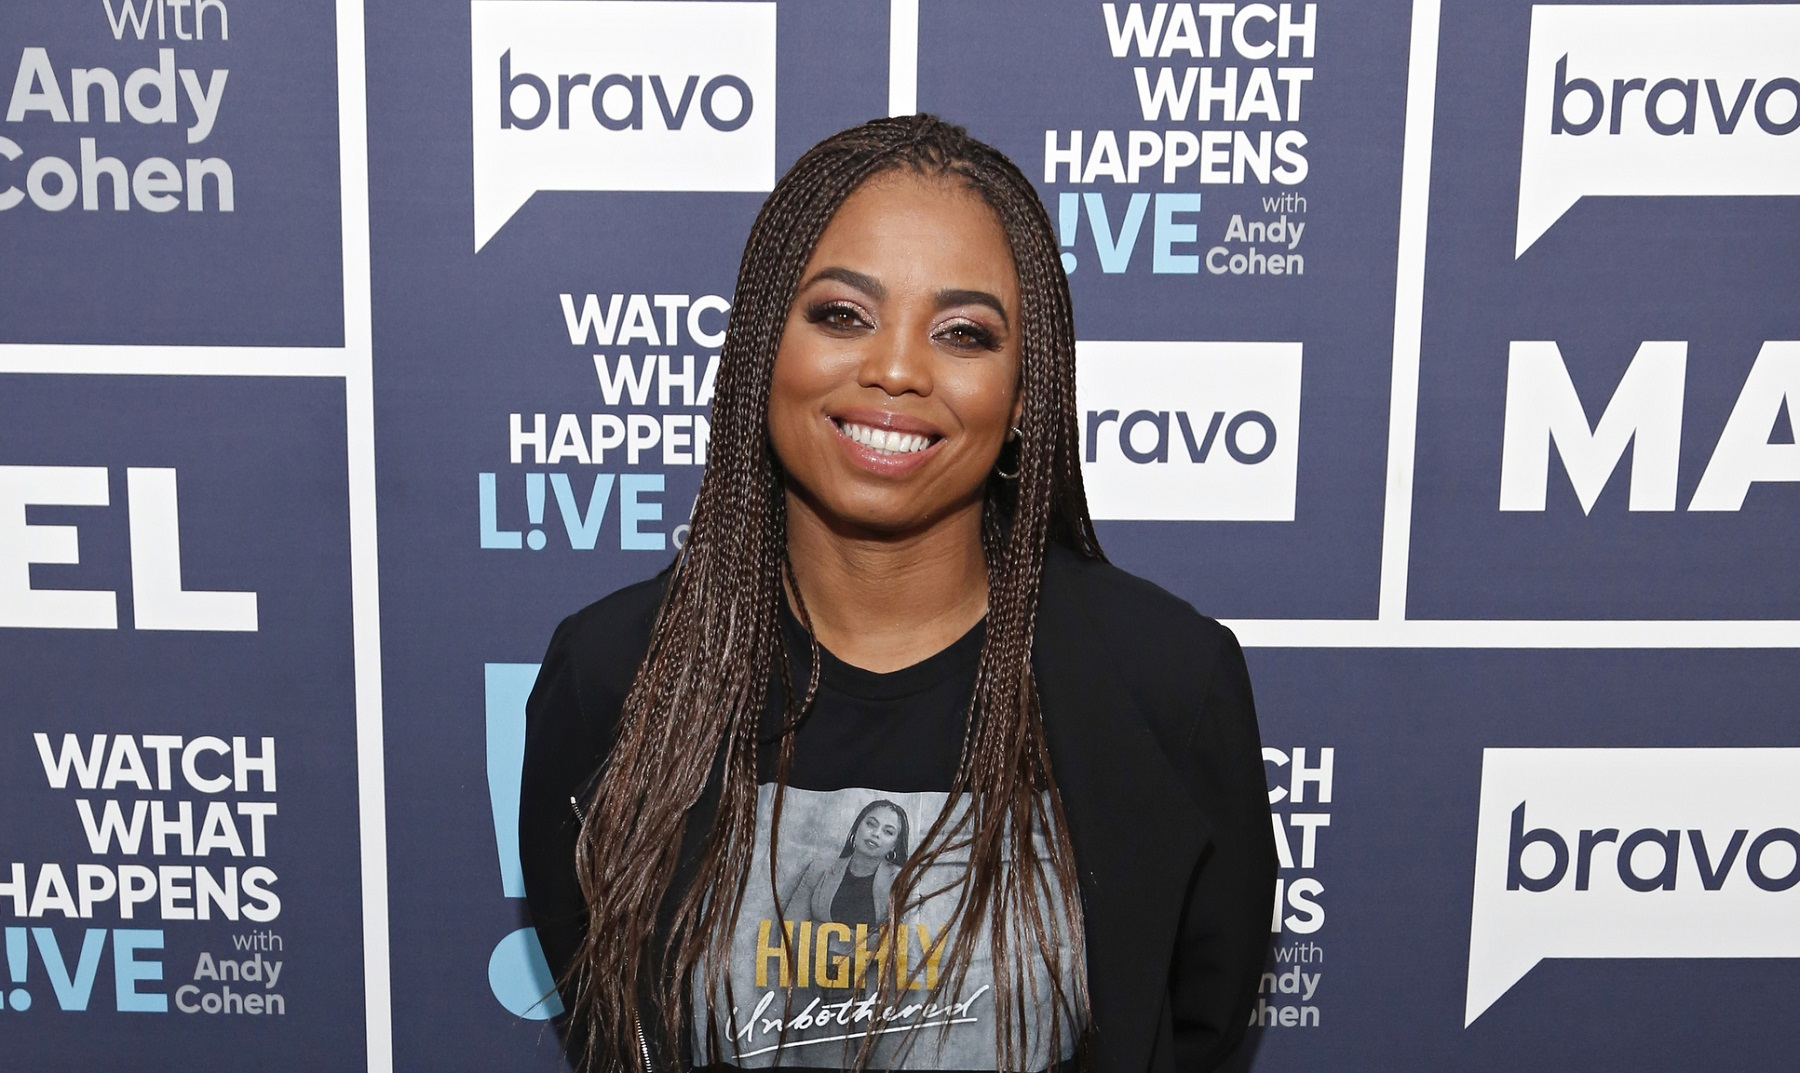 Jemele Hill Asked an Astonishingly Stupid Question, and Her Co-Host Actually Repeated It